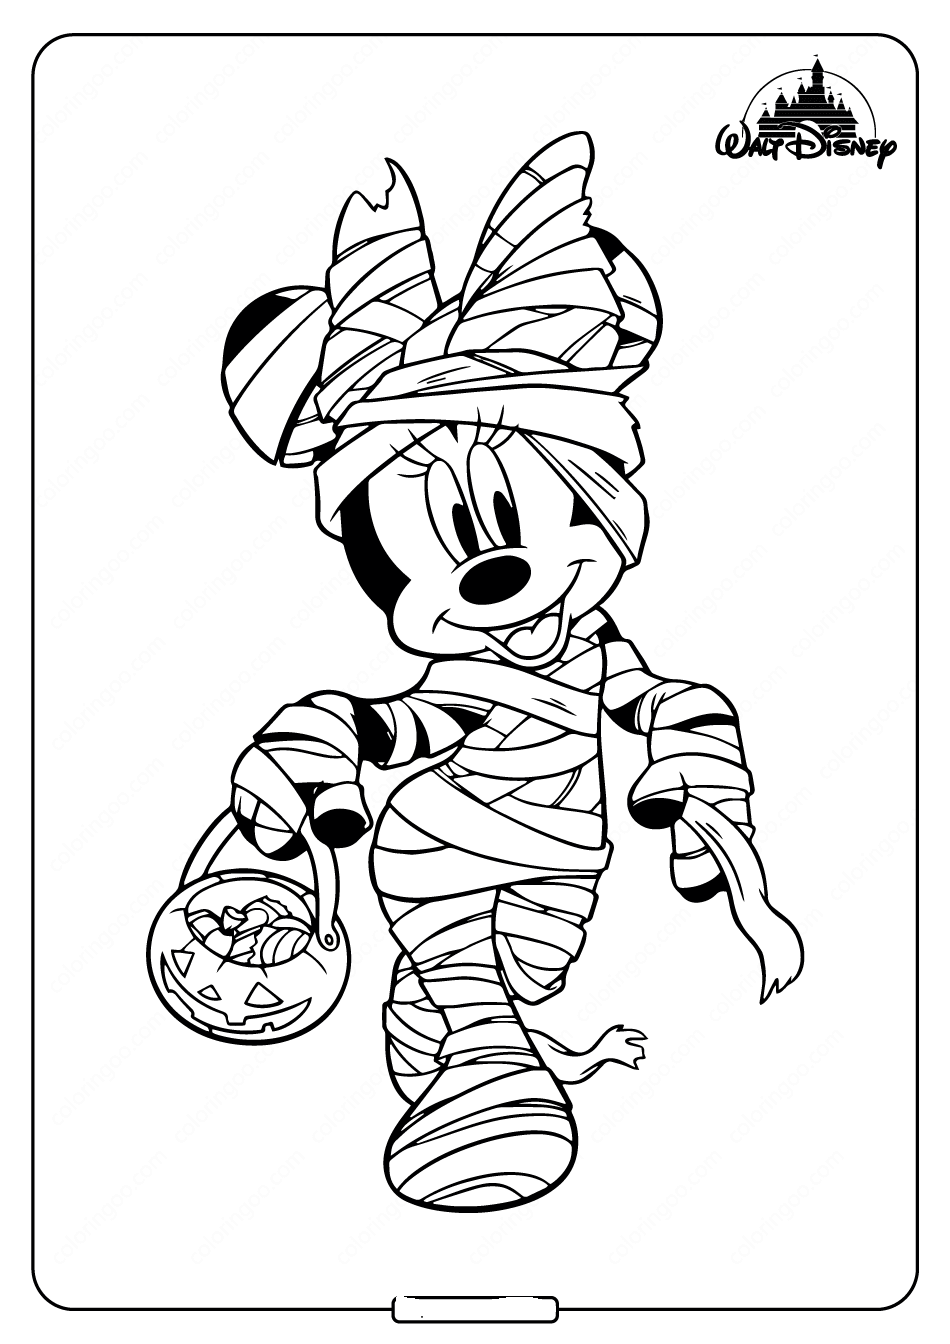 Mummy Minnie Mouse Coloring Page